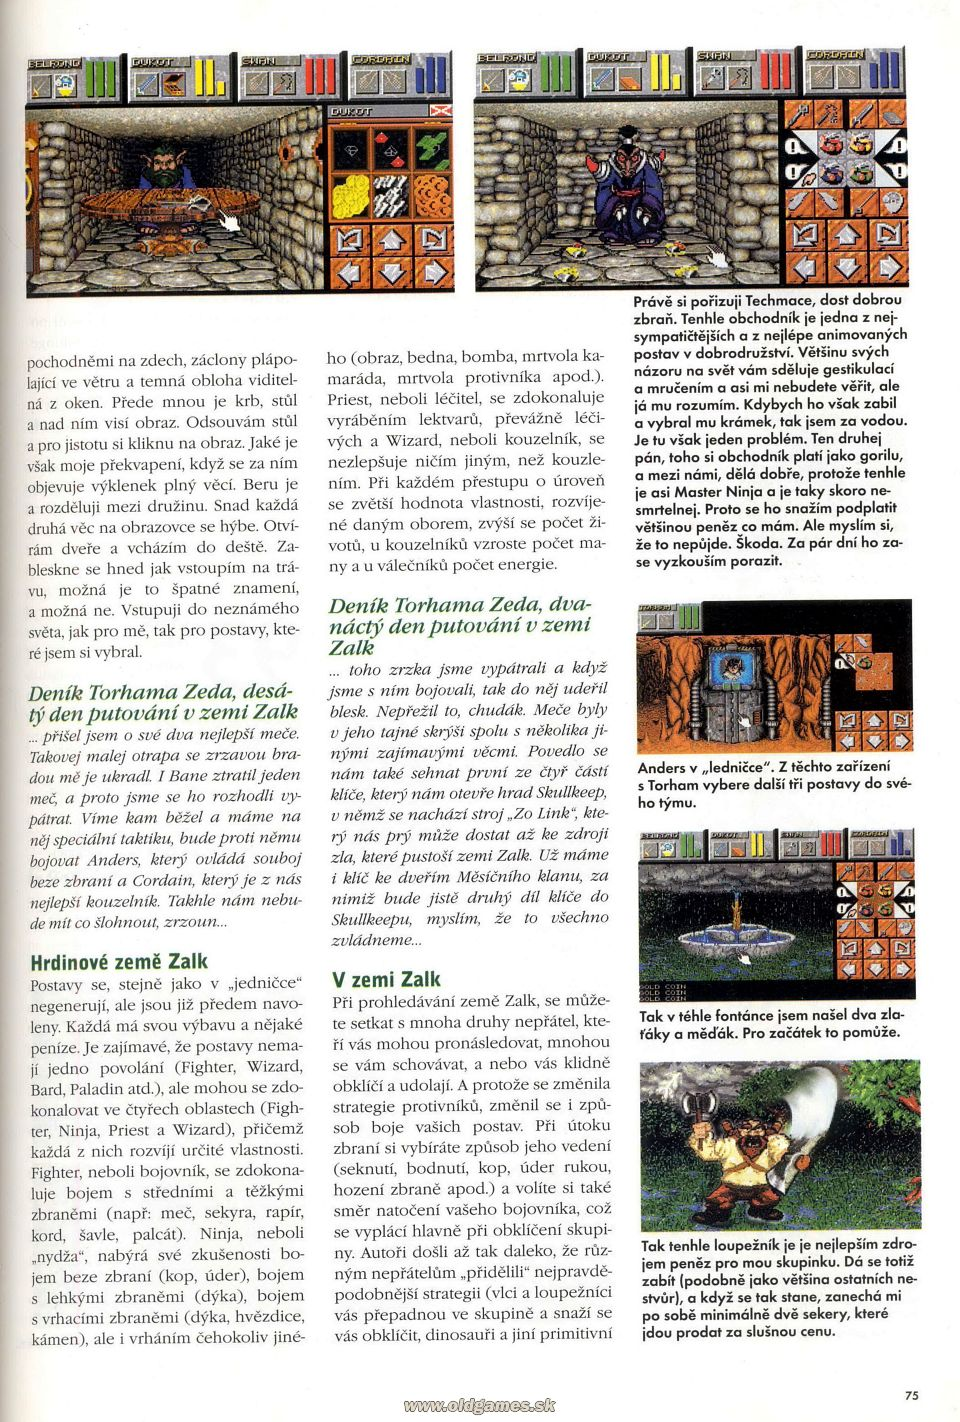 Dungeon Master II for PC Review published in Czech magazine 'Excalibur', Issue #50 October 1995, Page 75